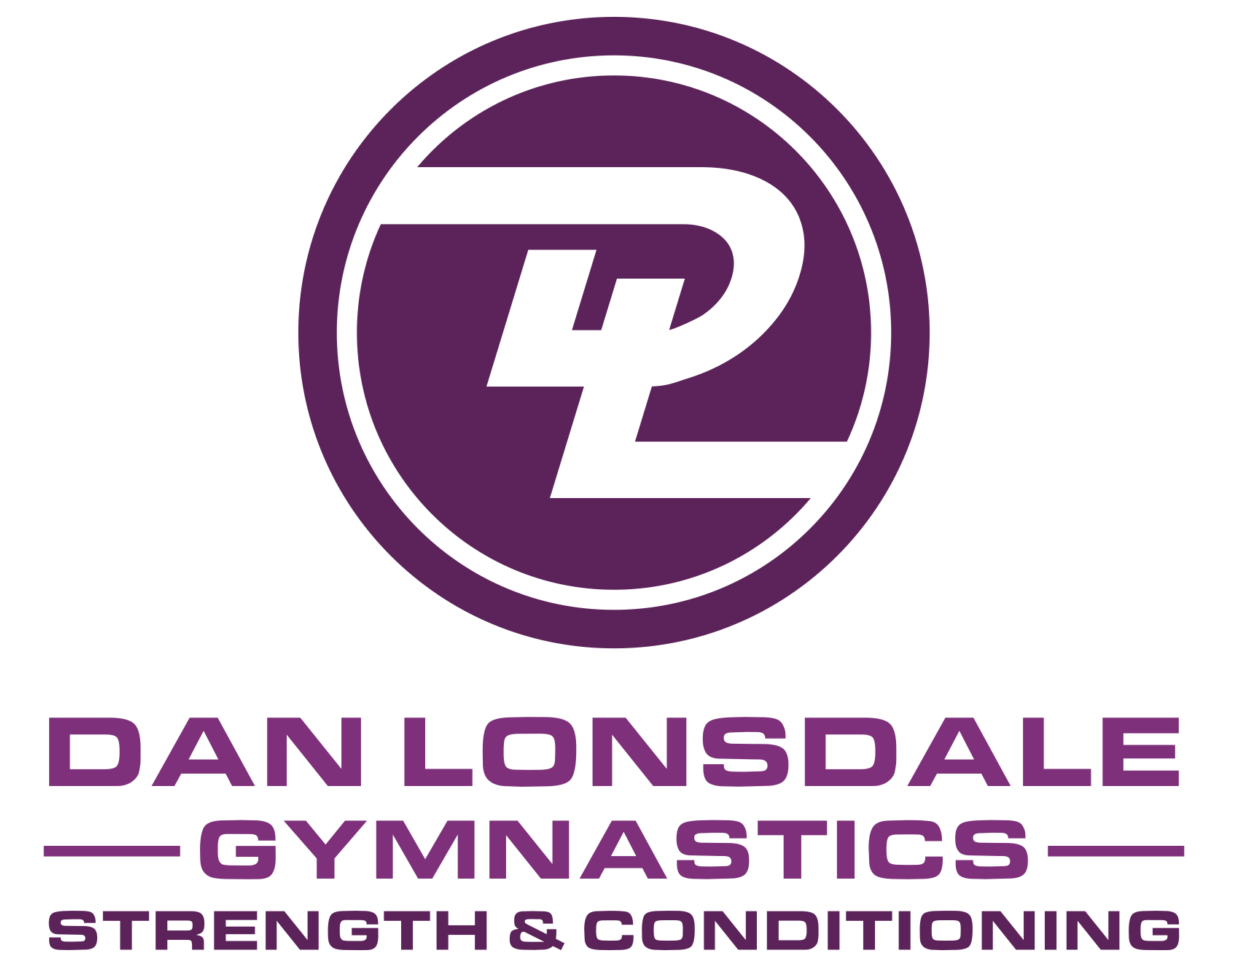 Dan Lonsdale Strength & Conditioning